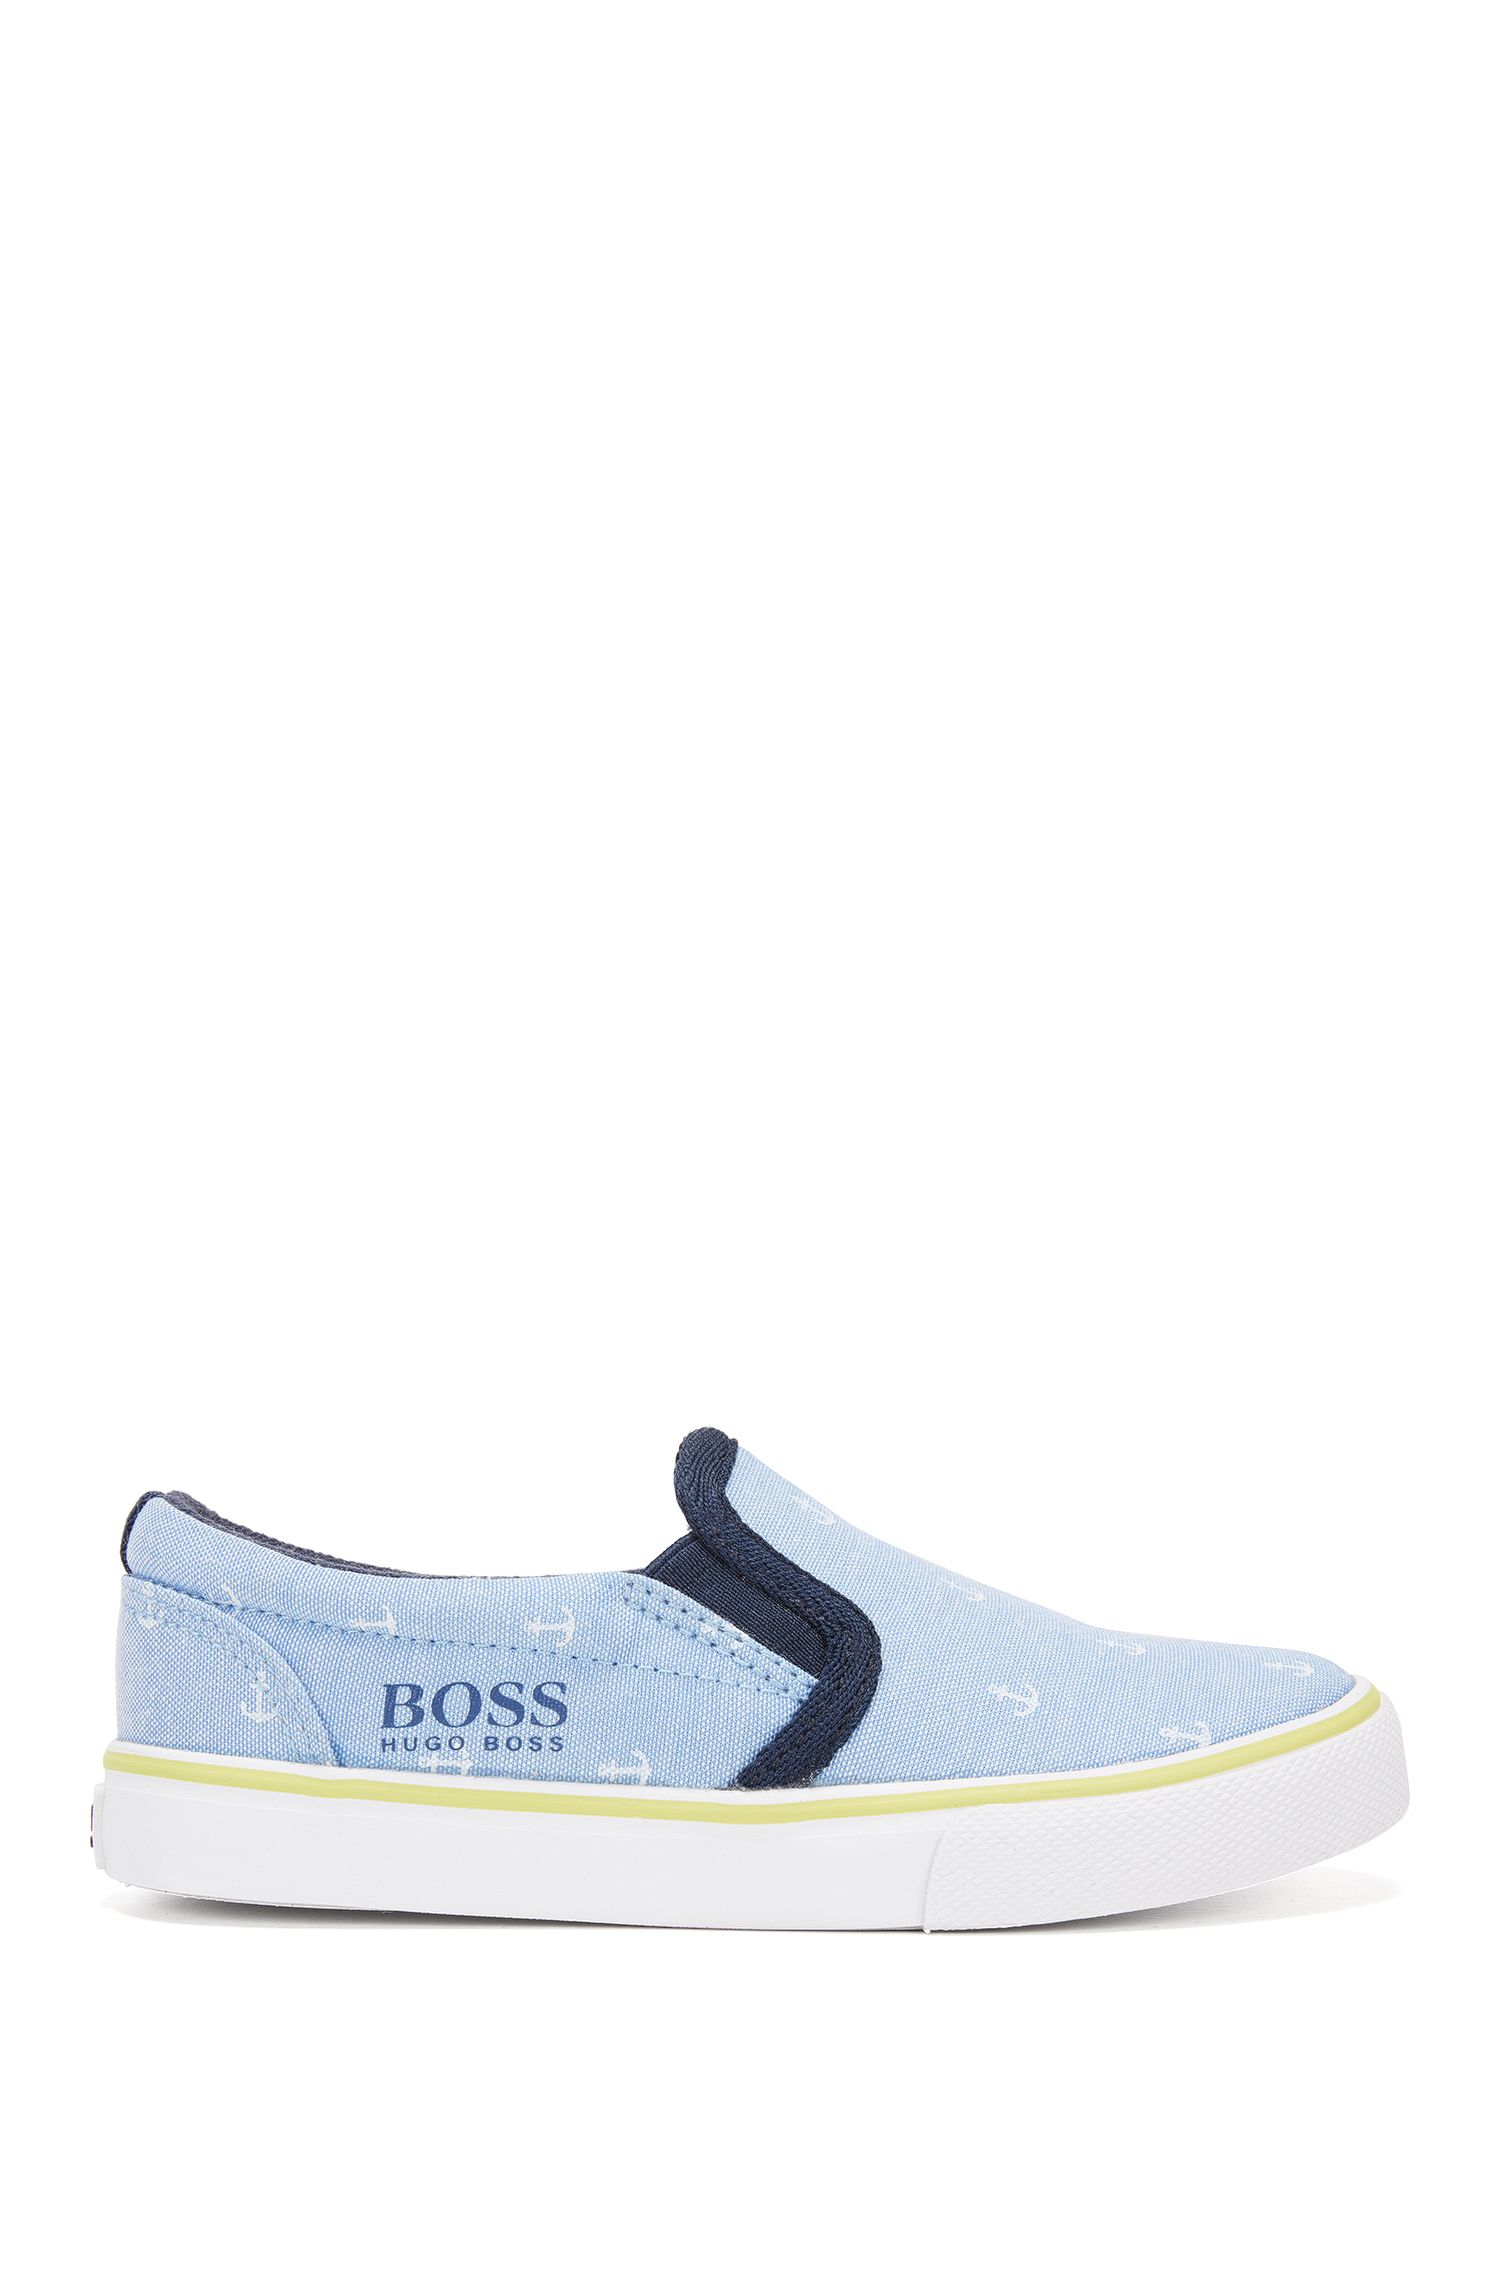 Kids' slip-on shoes in printed cotton